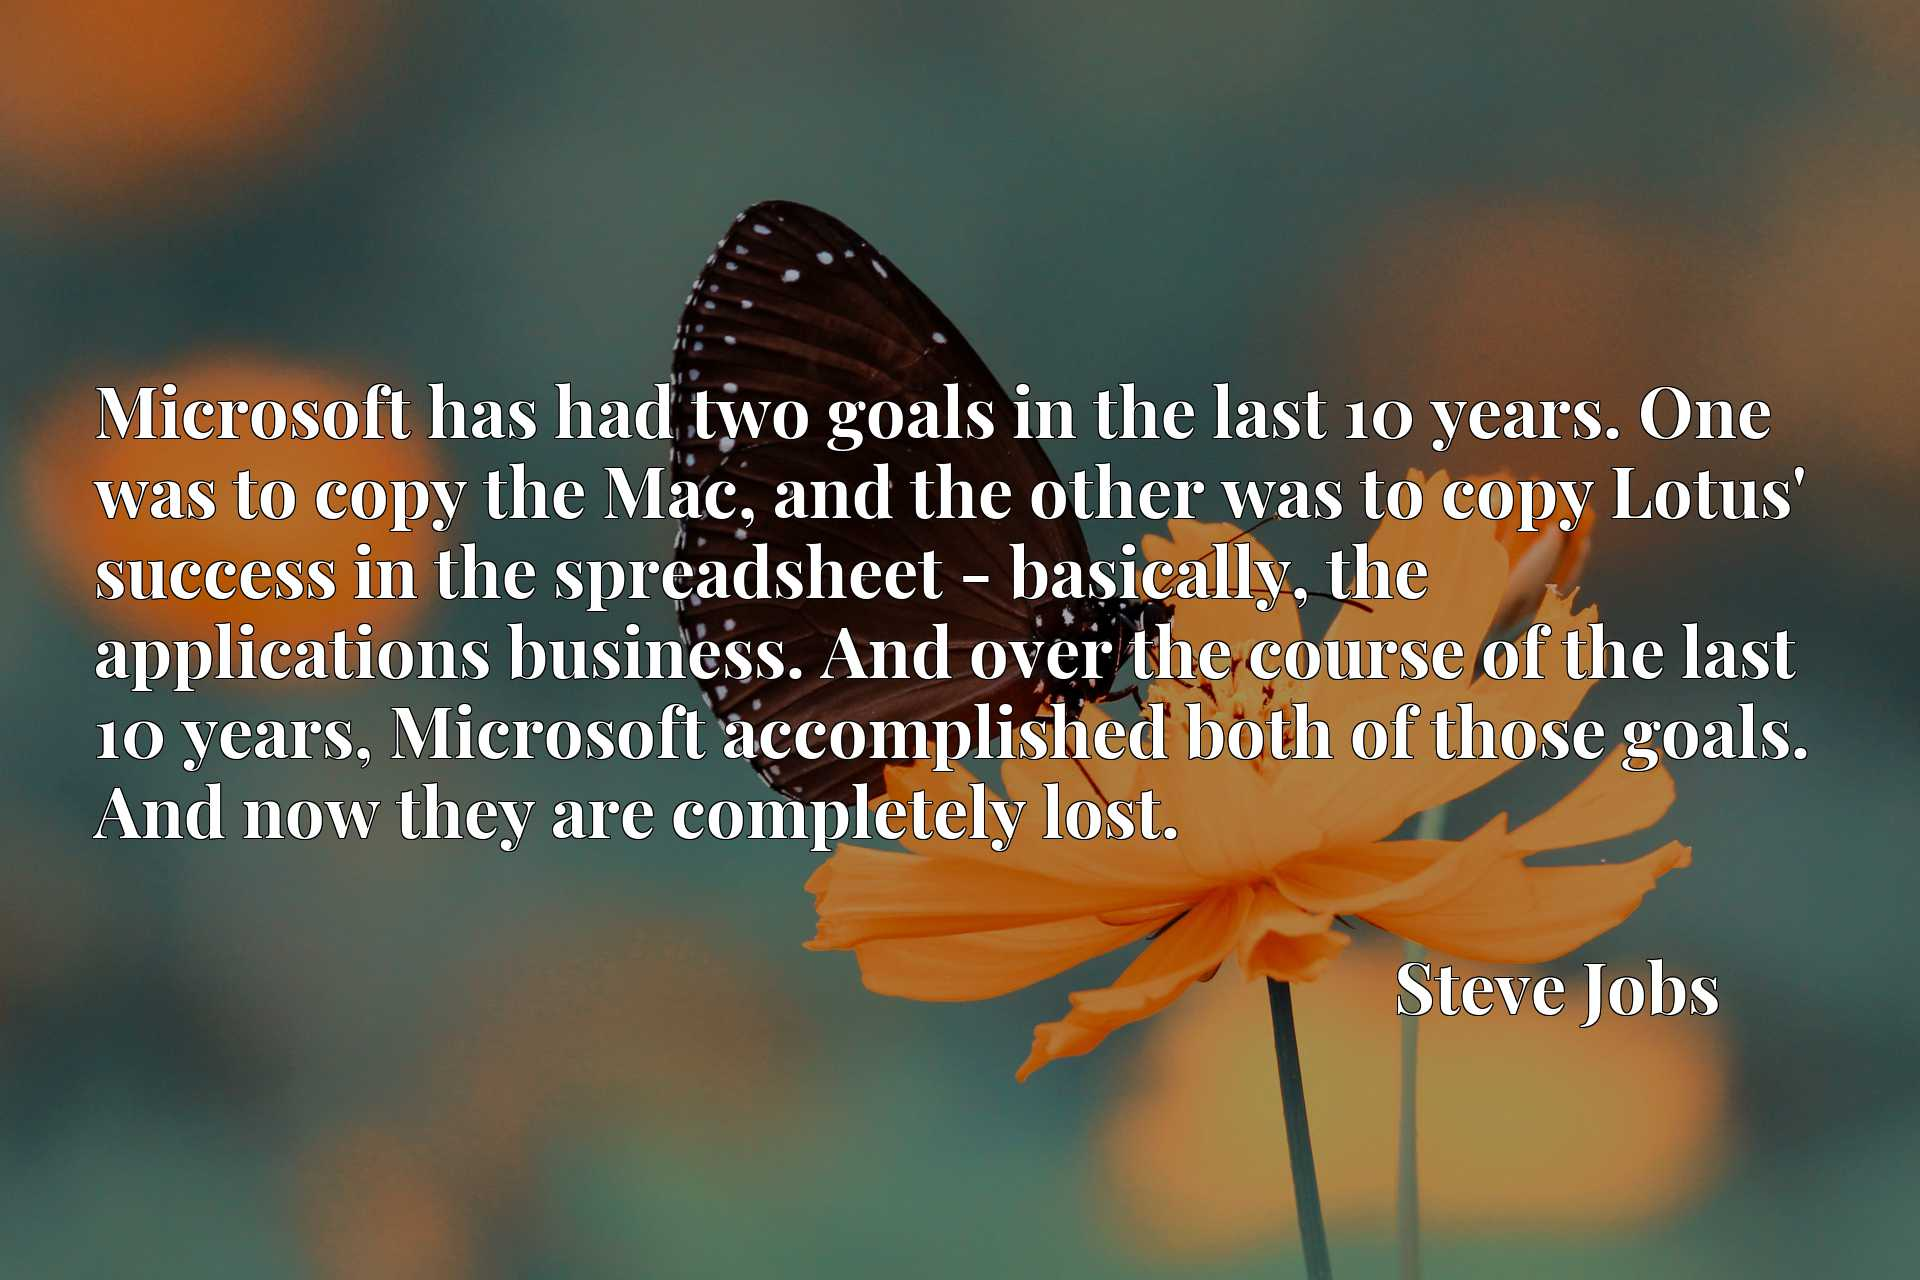 Microsoft has had two goals in the last 10 years. One was to copy the Mac, and the other was to copy Lotus' success in the spreadsheet - basically, the applications business. And over the course of the last 10 years, Microsoft accomplished both of those goals. And now they are completely lost.